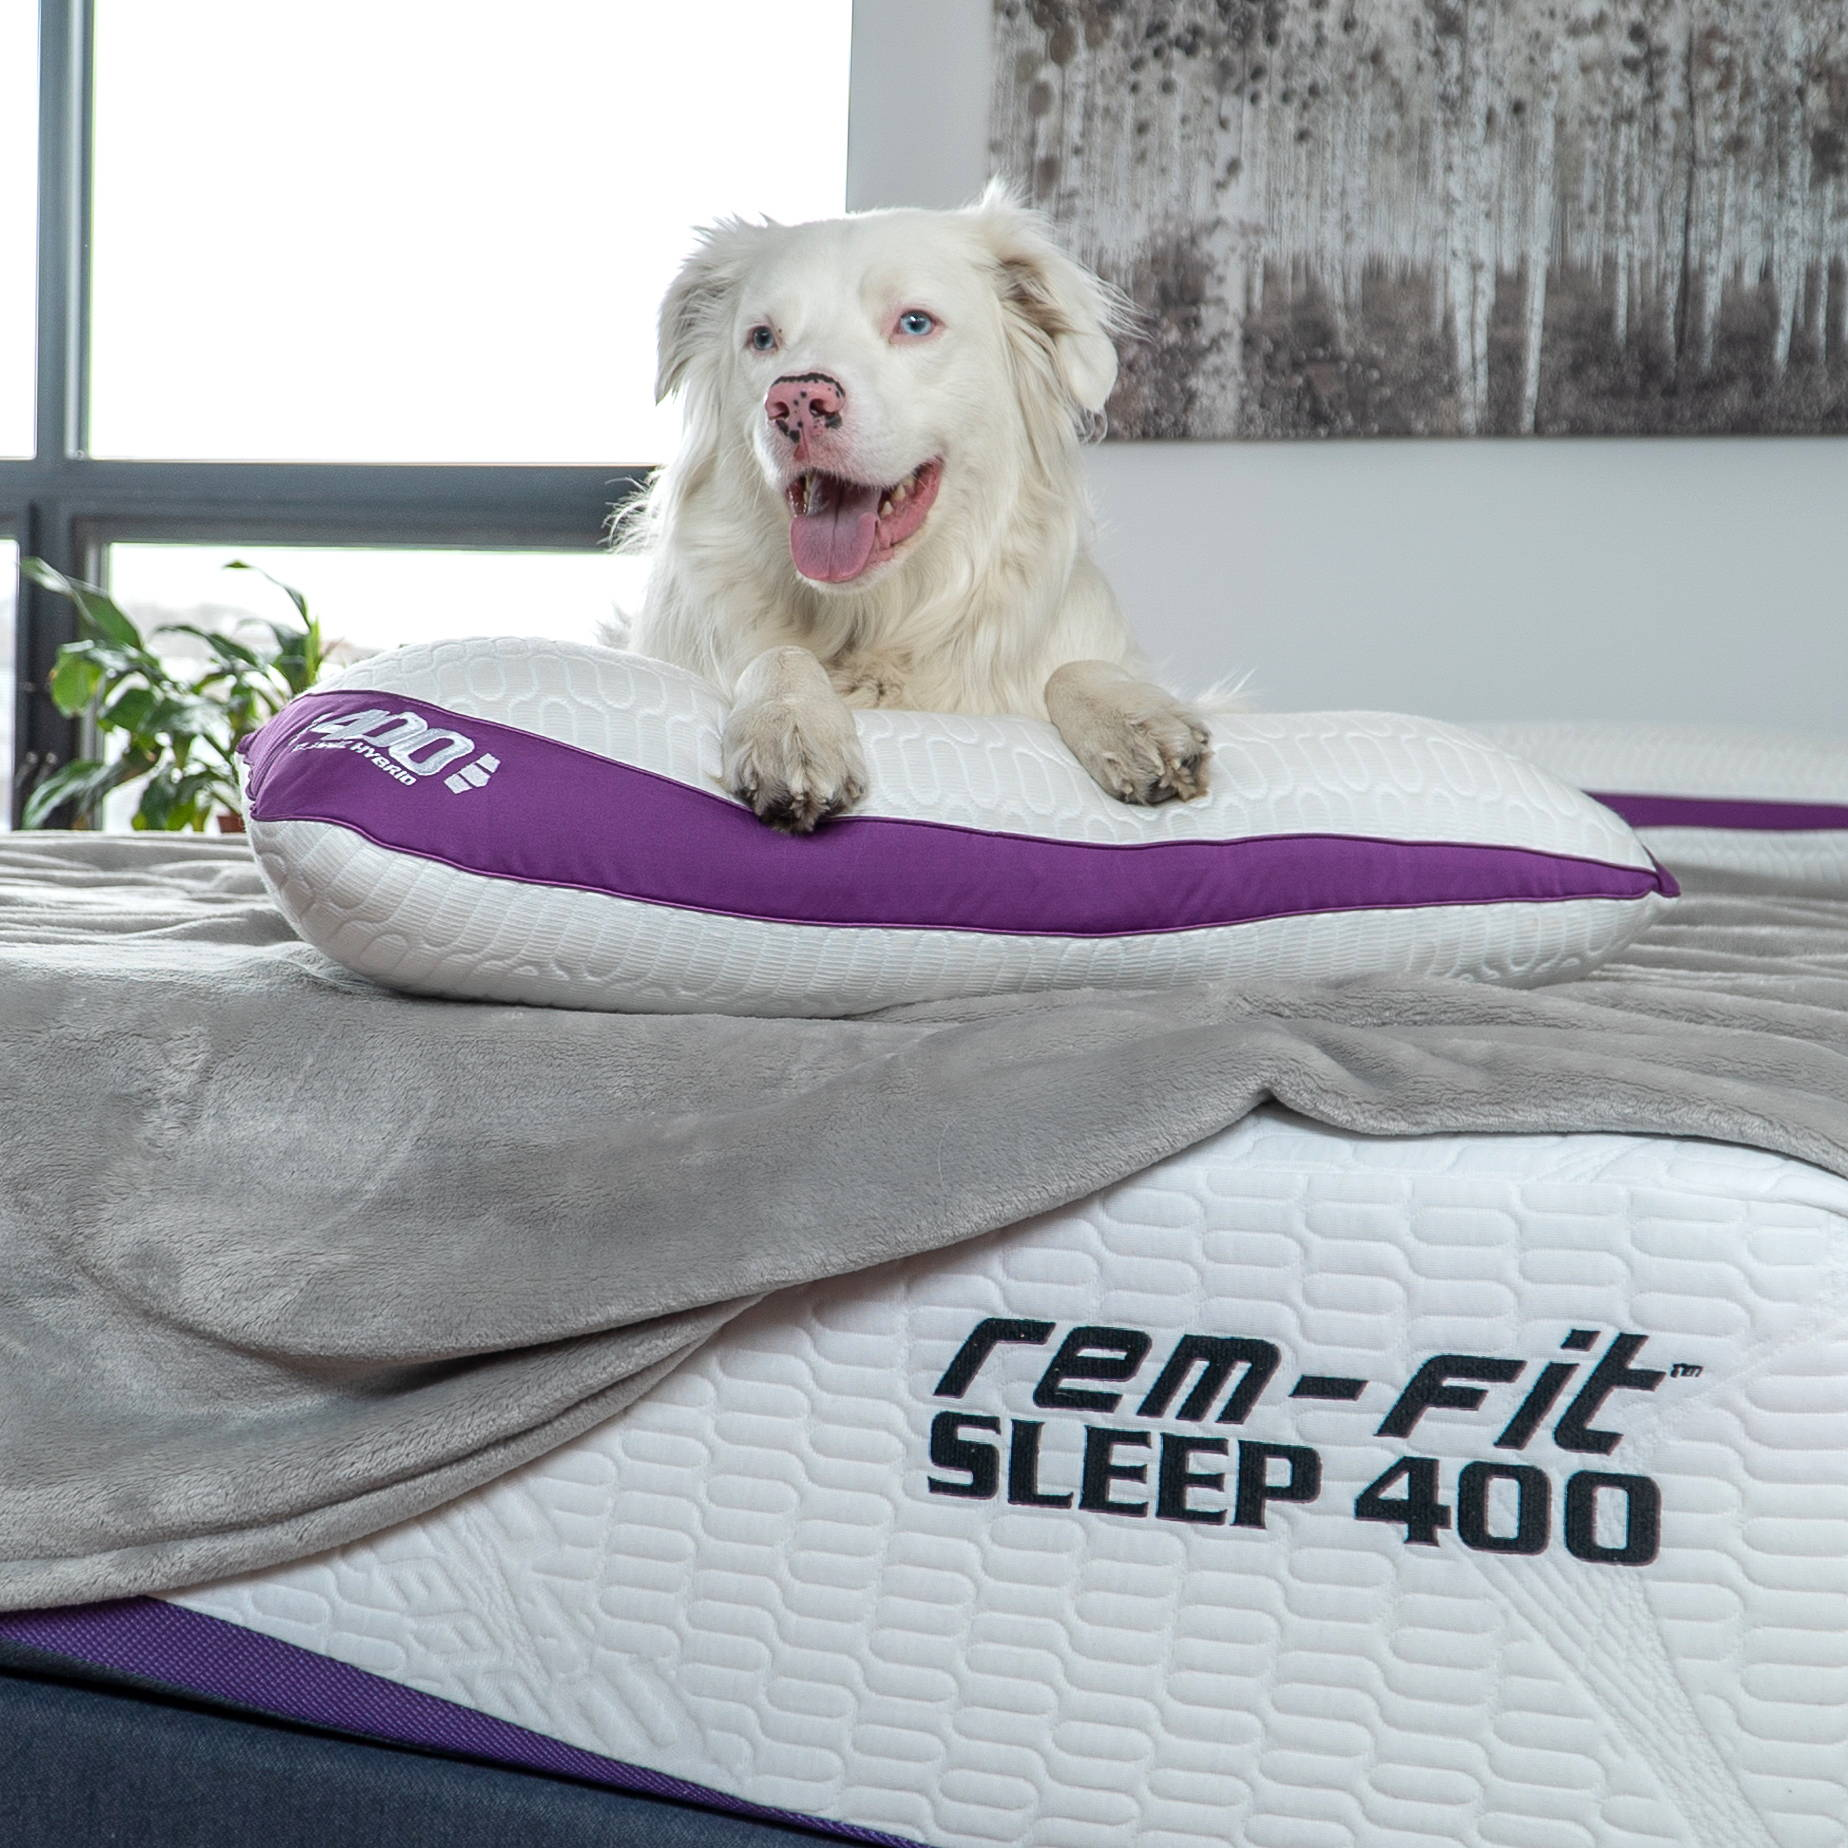 What Type of Mattress is Best for Me?. dog on advanced cooling memory foam mattress and 400 cooling pillow